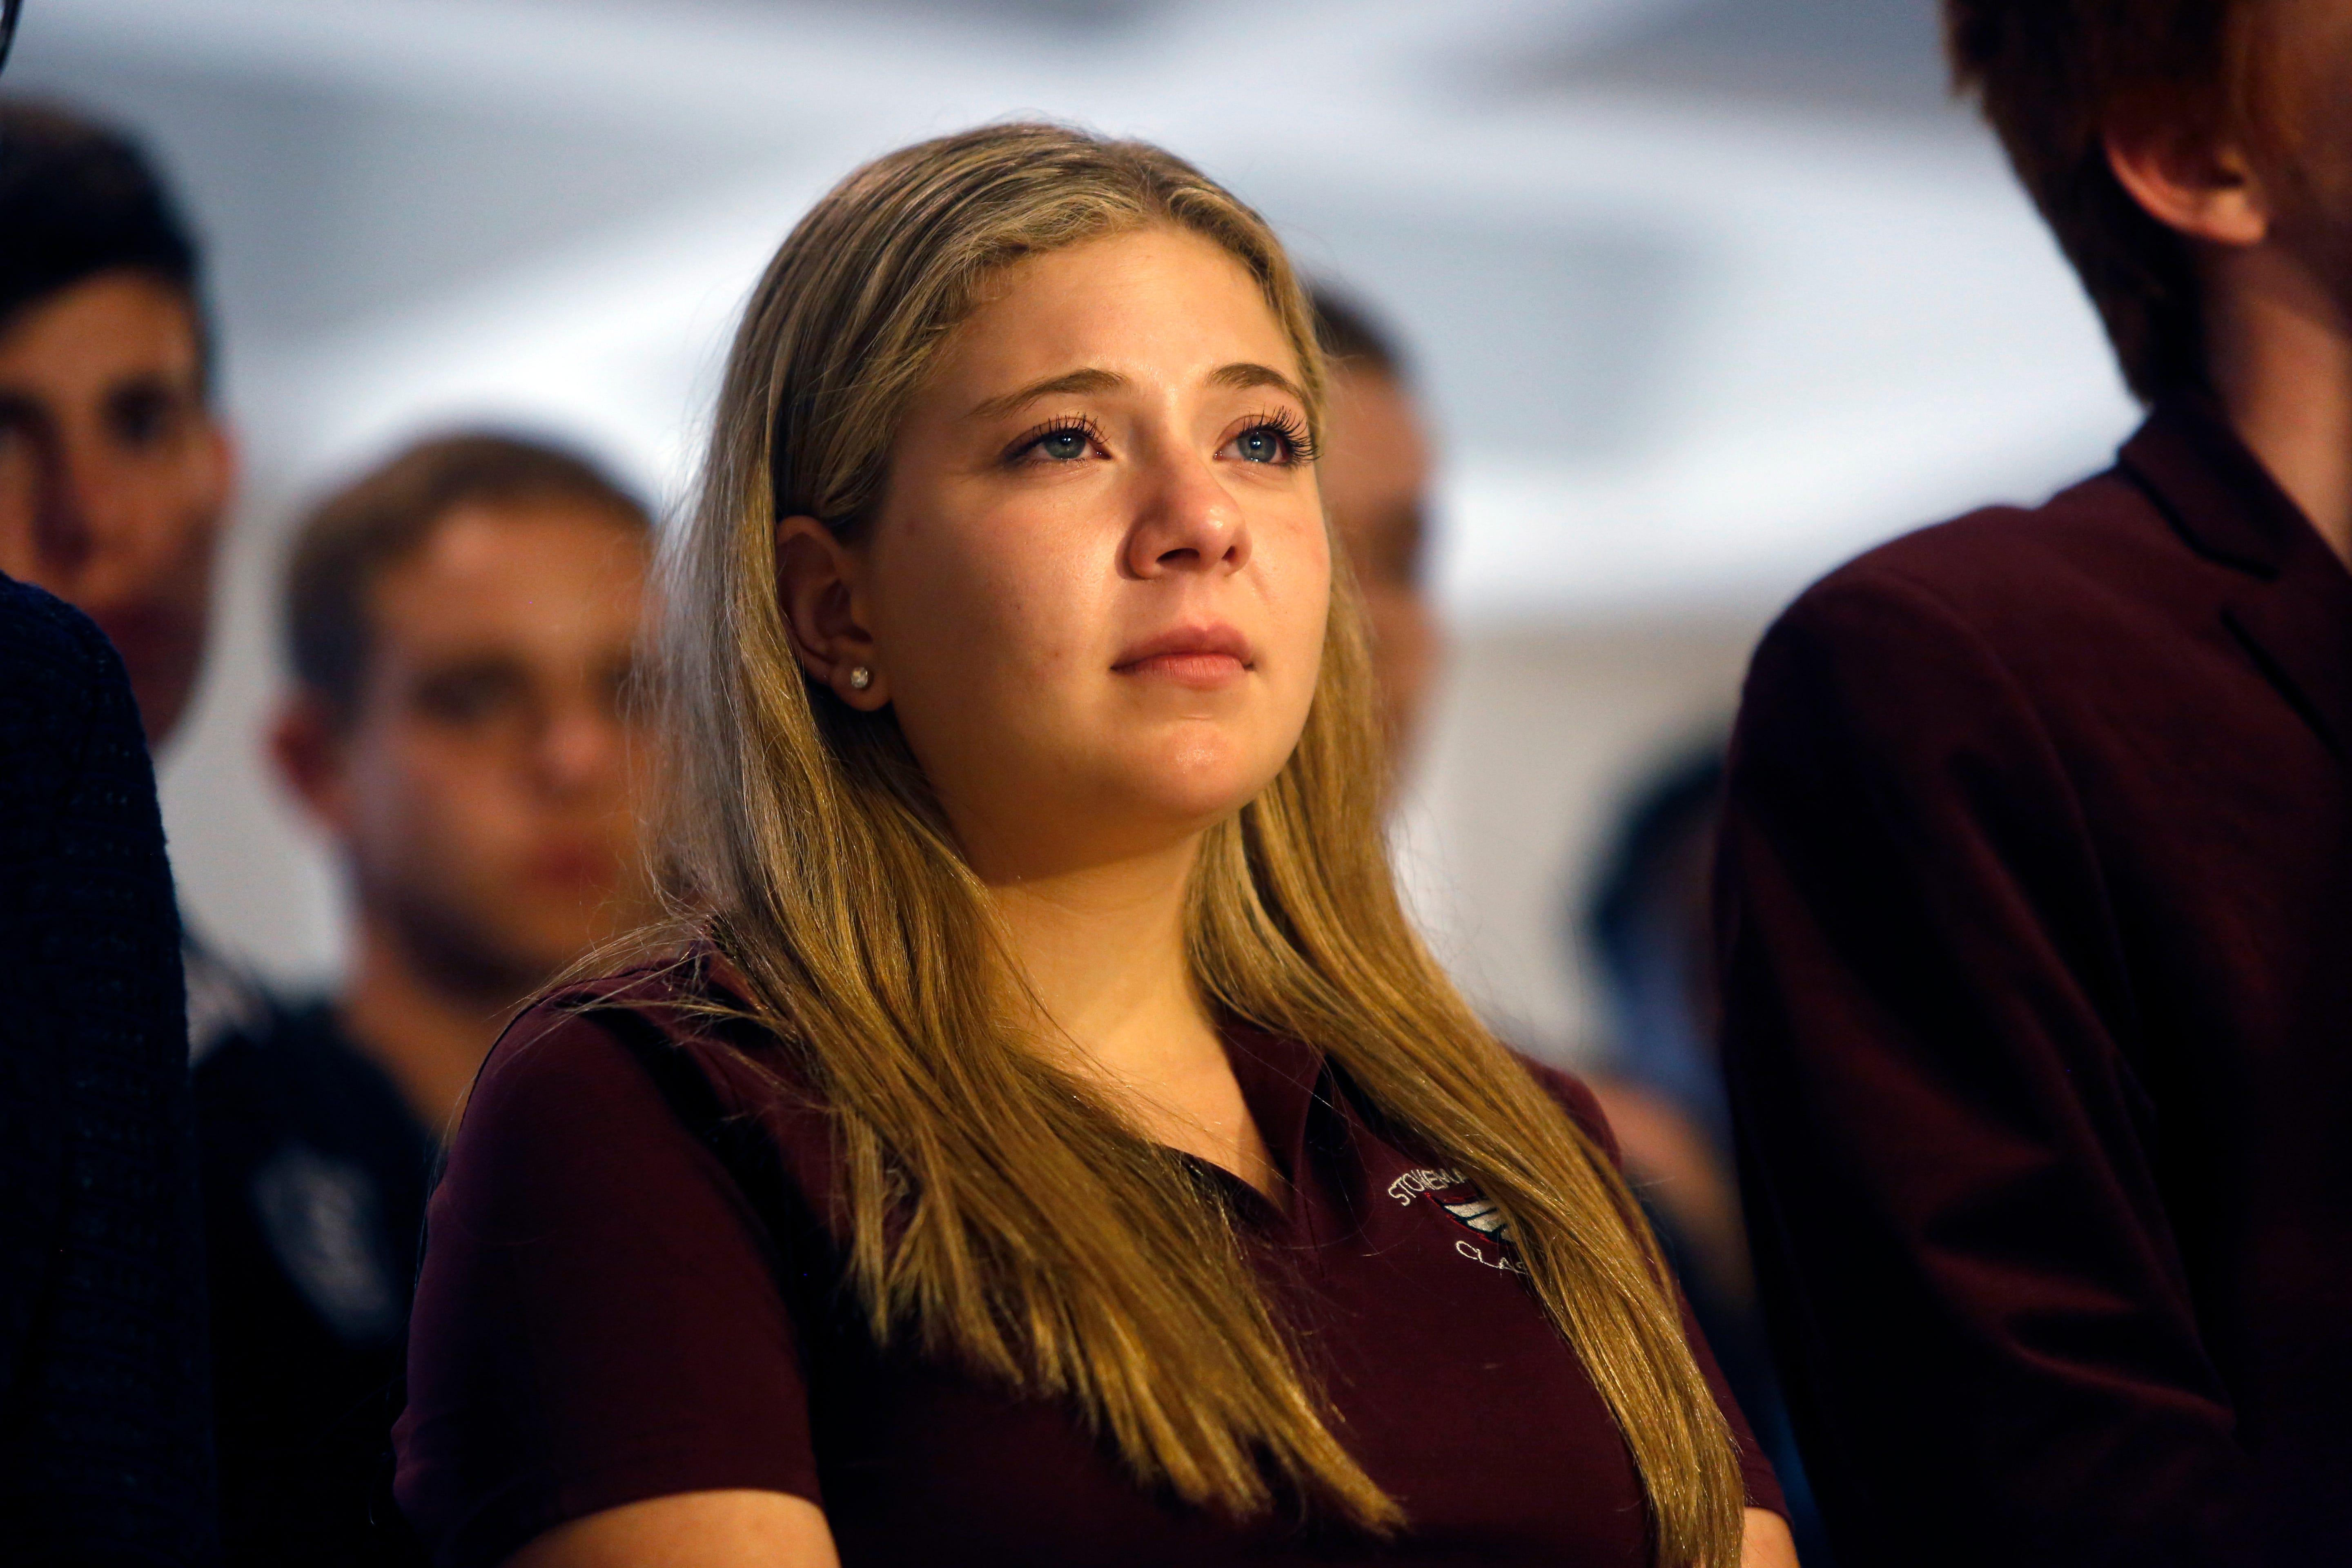 Stoneman Douglas High School Junior Class President Jaclyn Corin's, 17, eyes well with tears as she listens to a fellow student tell his story during a press conference at the Capitol in Tallahassee.